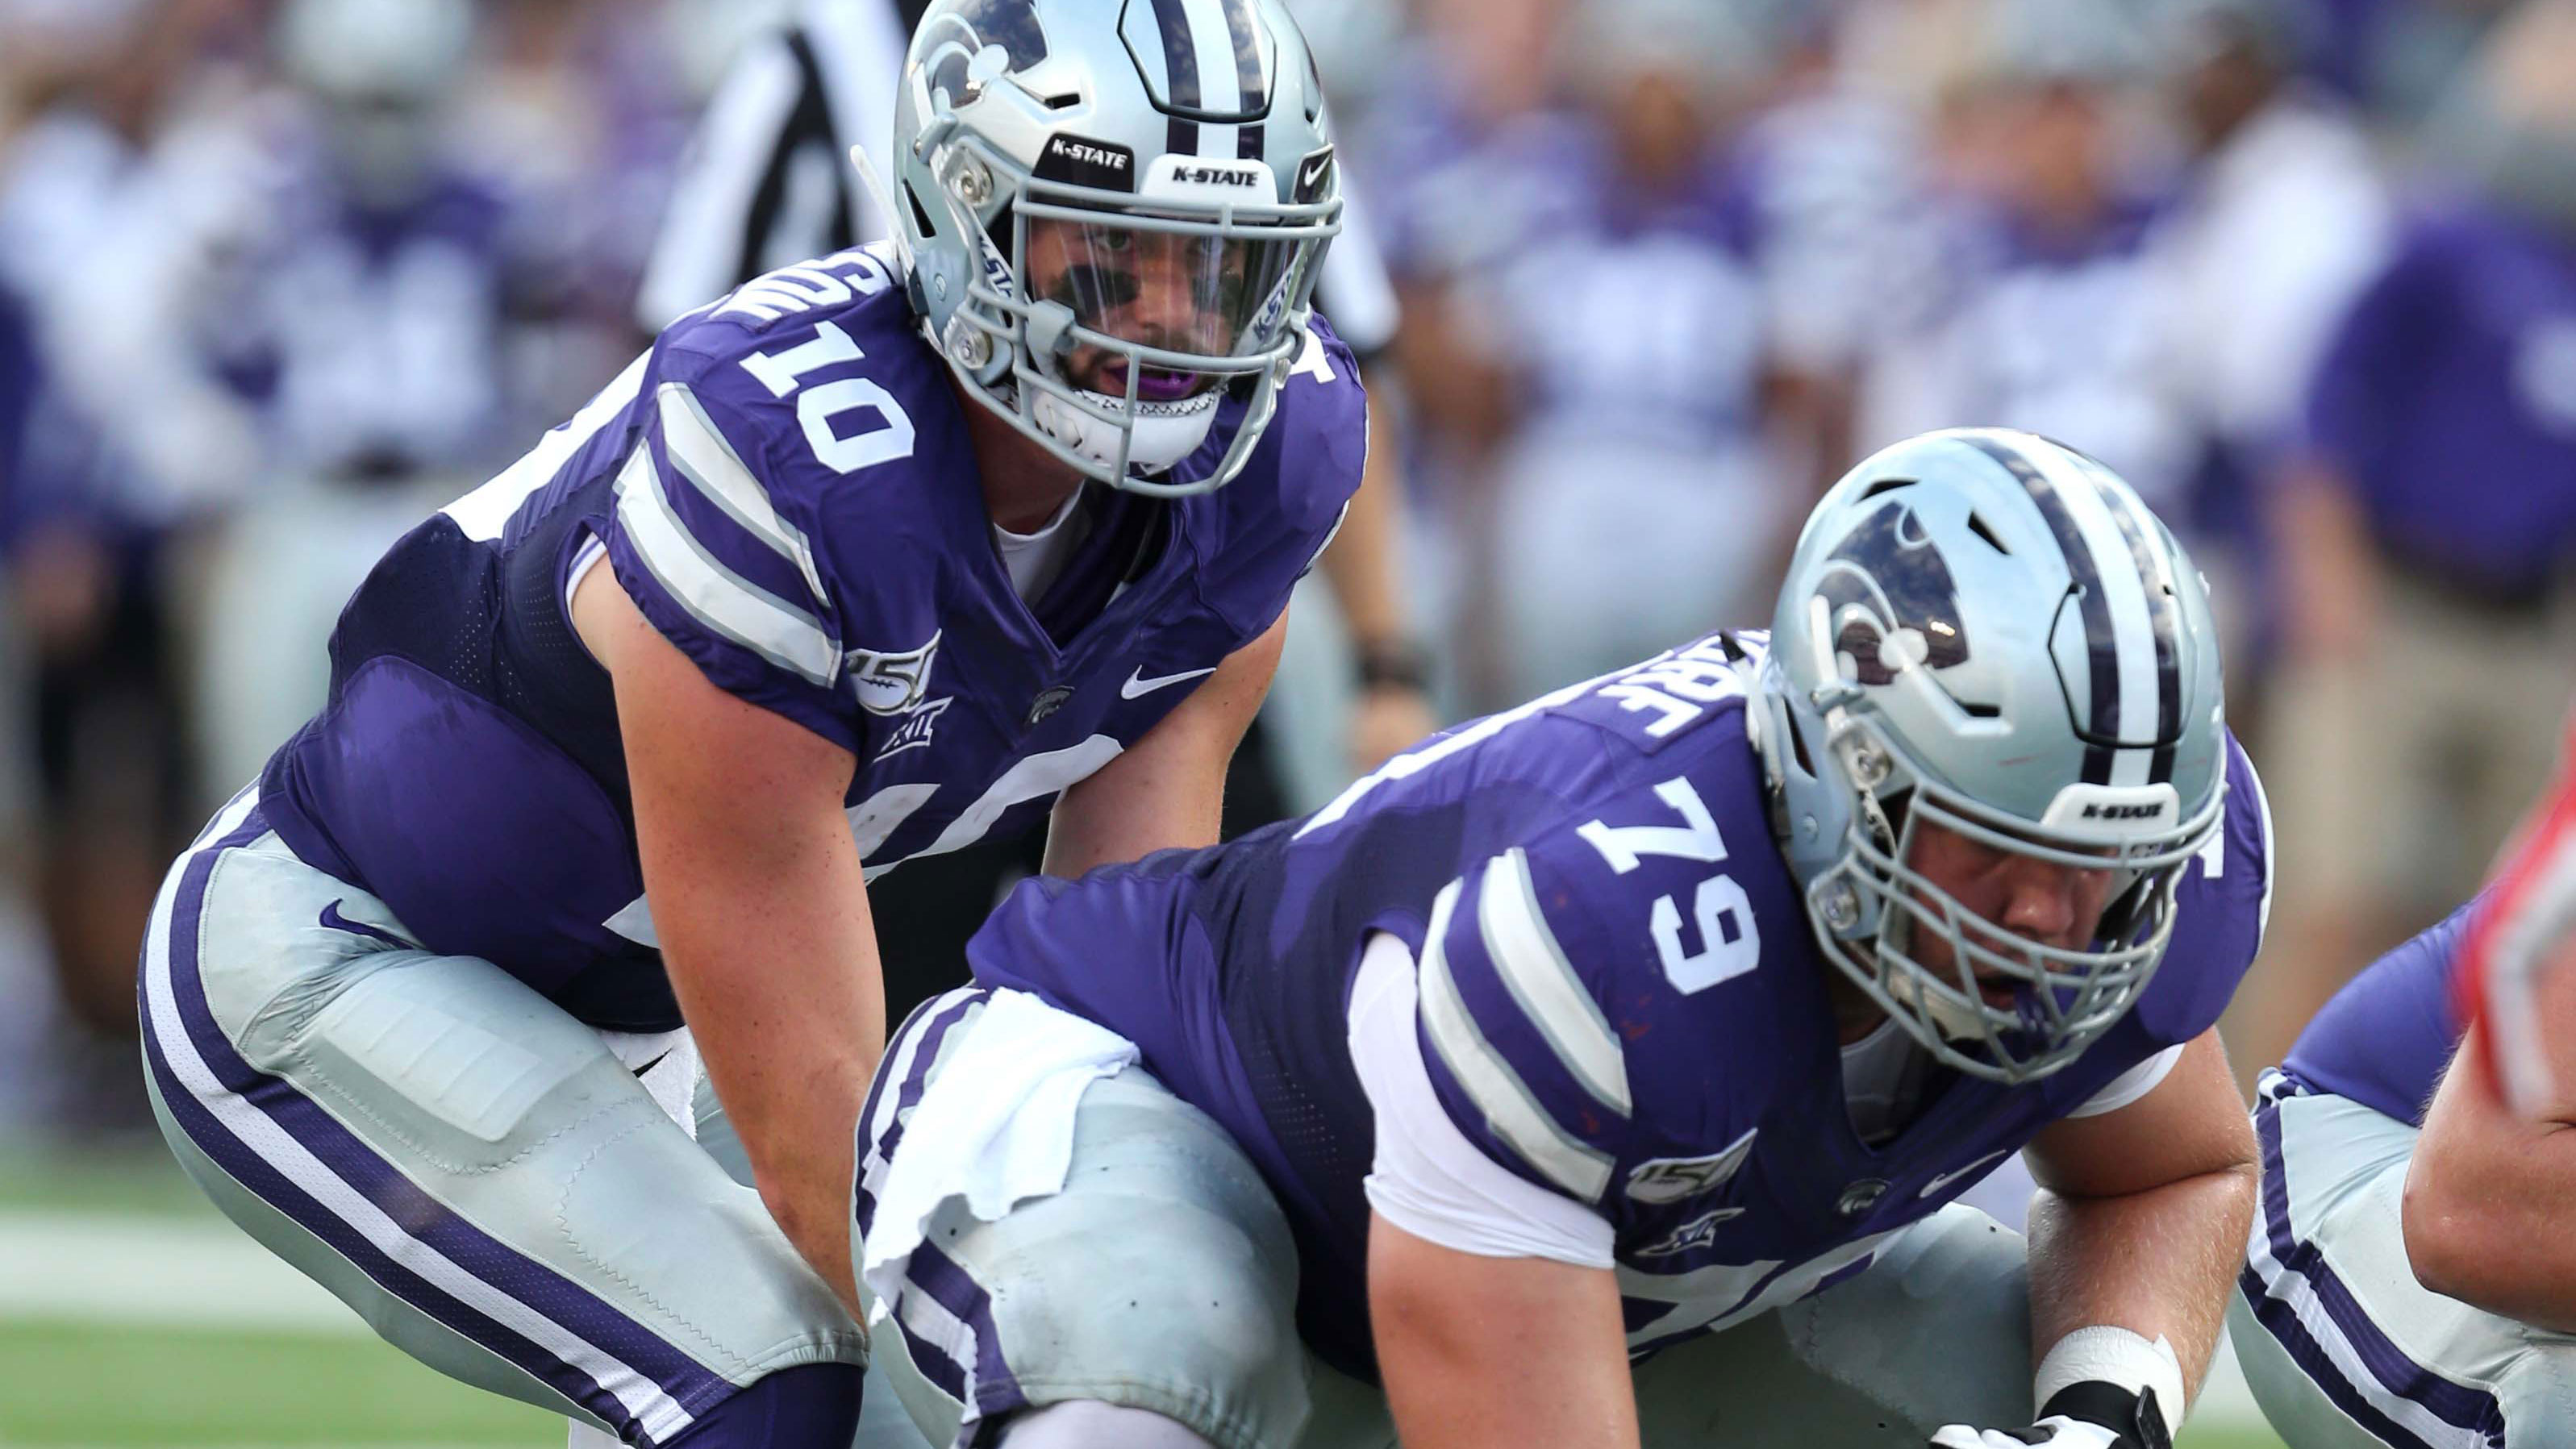 K-State C Holtorf among 12 finalists for top scholar-athlete award